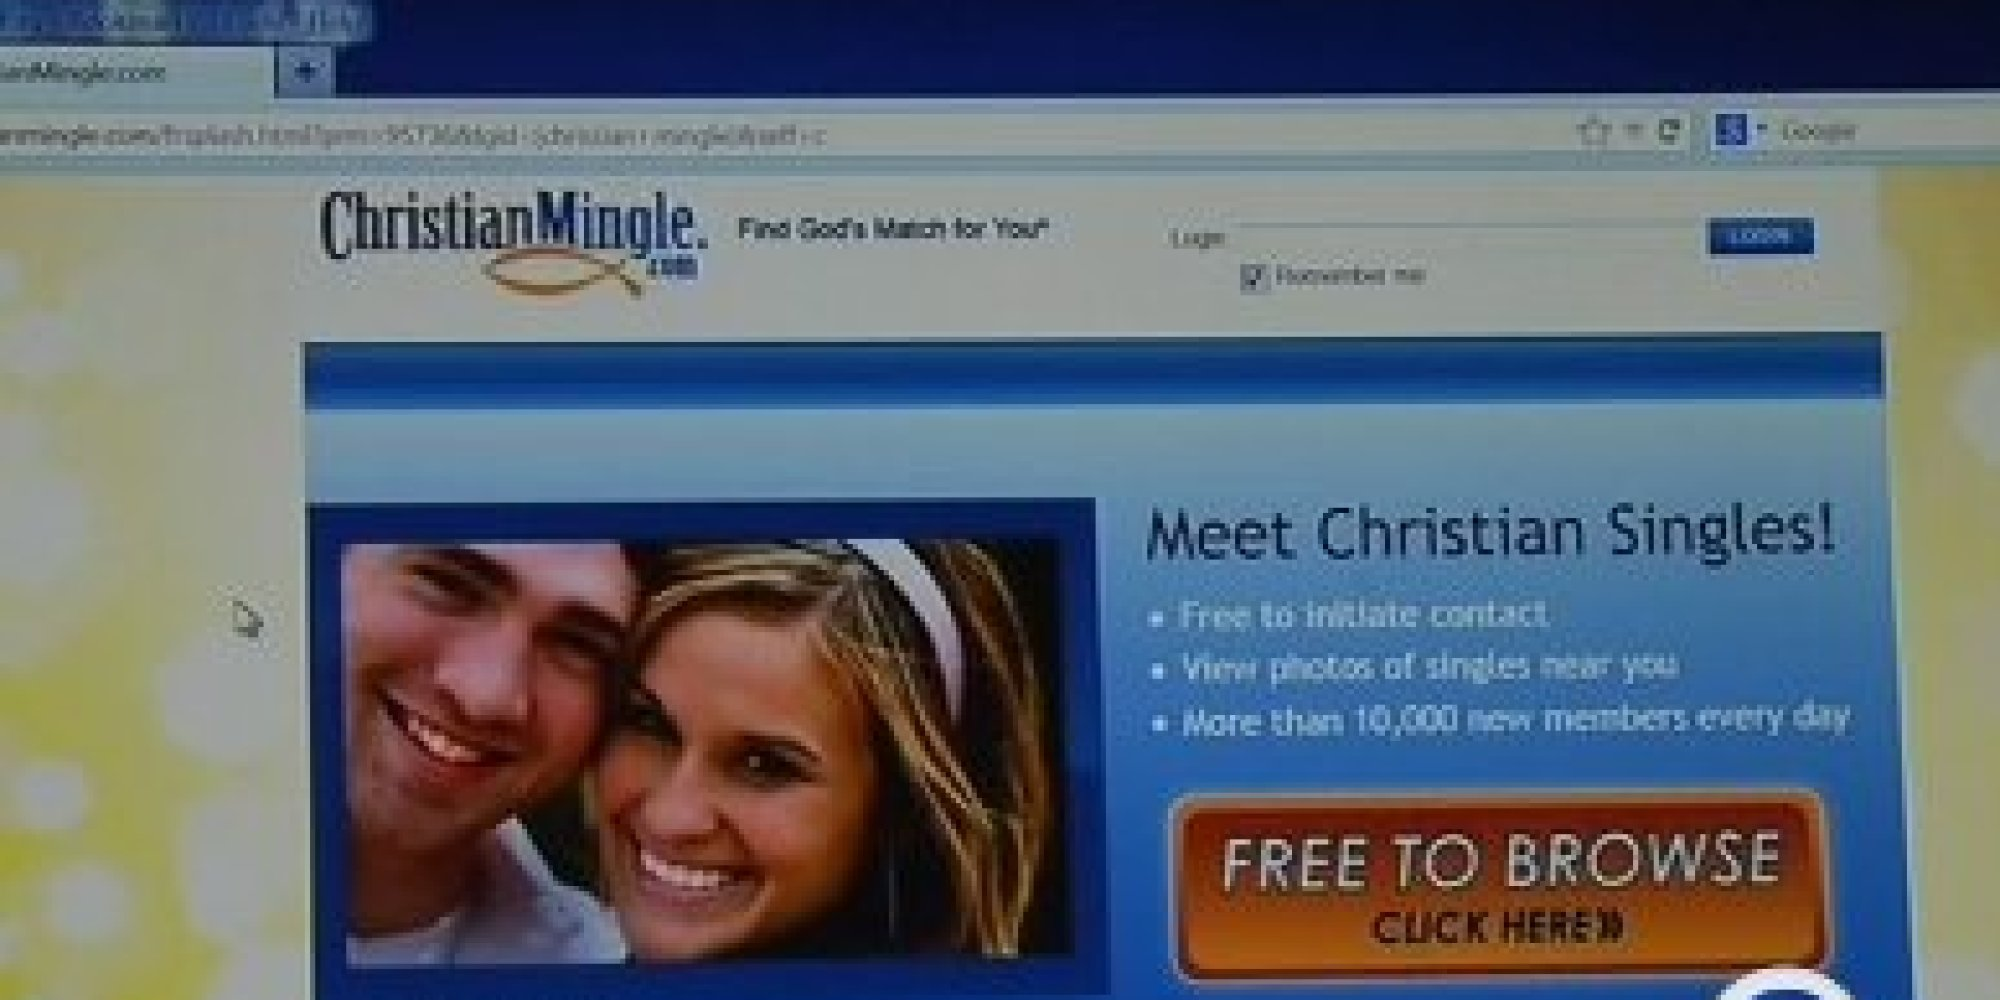 Christian dating website scams